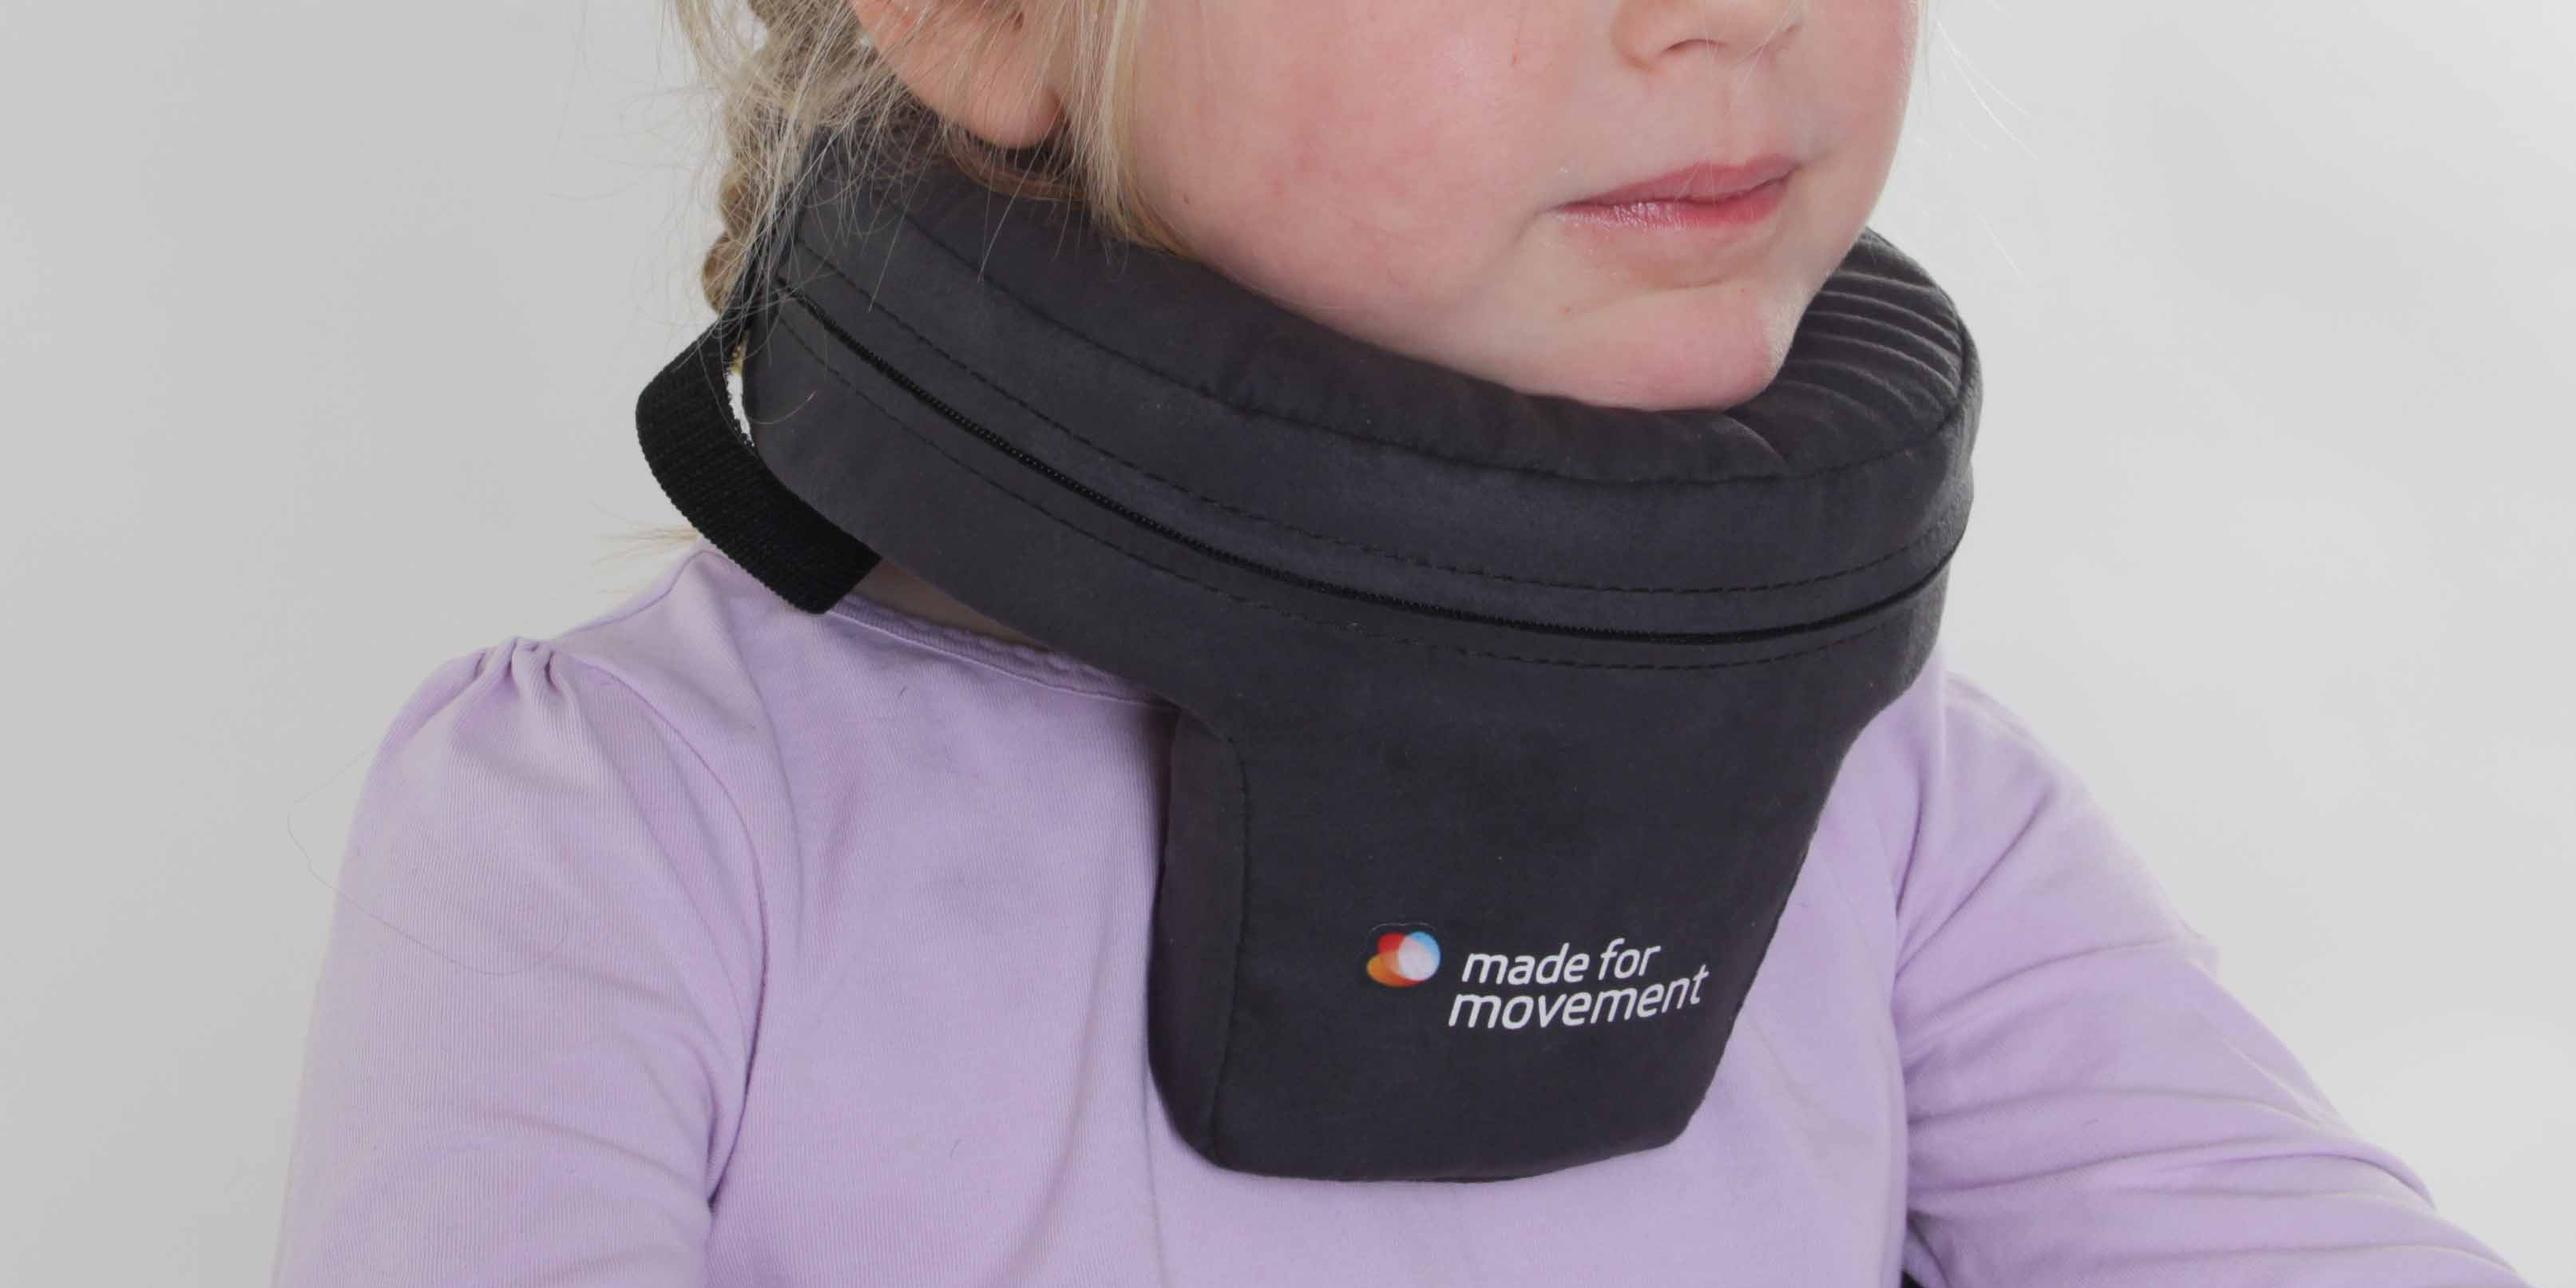 Neck support